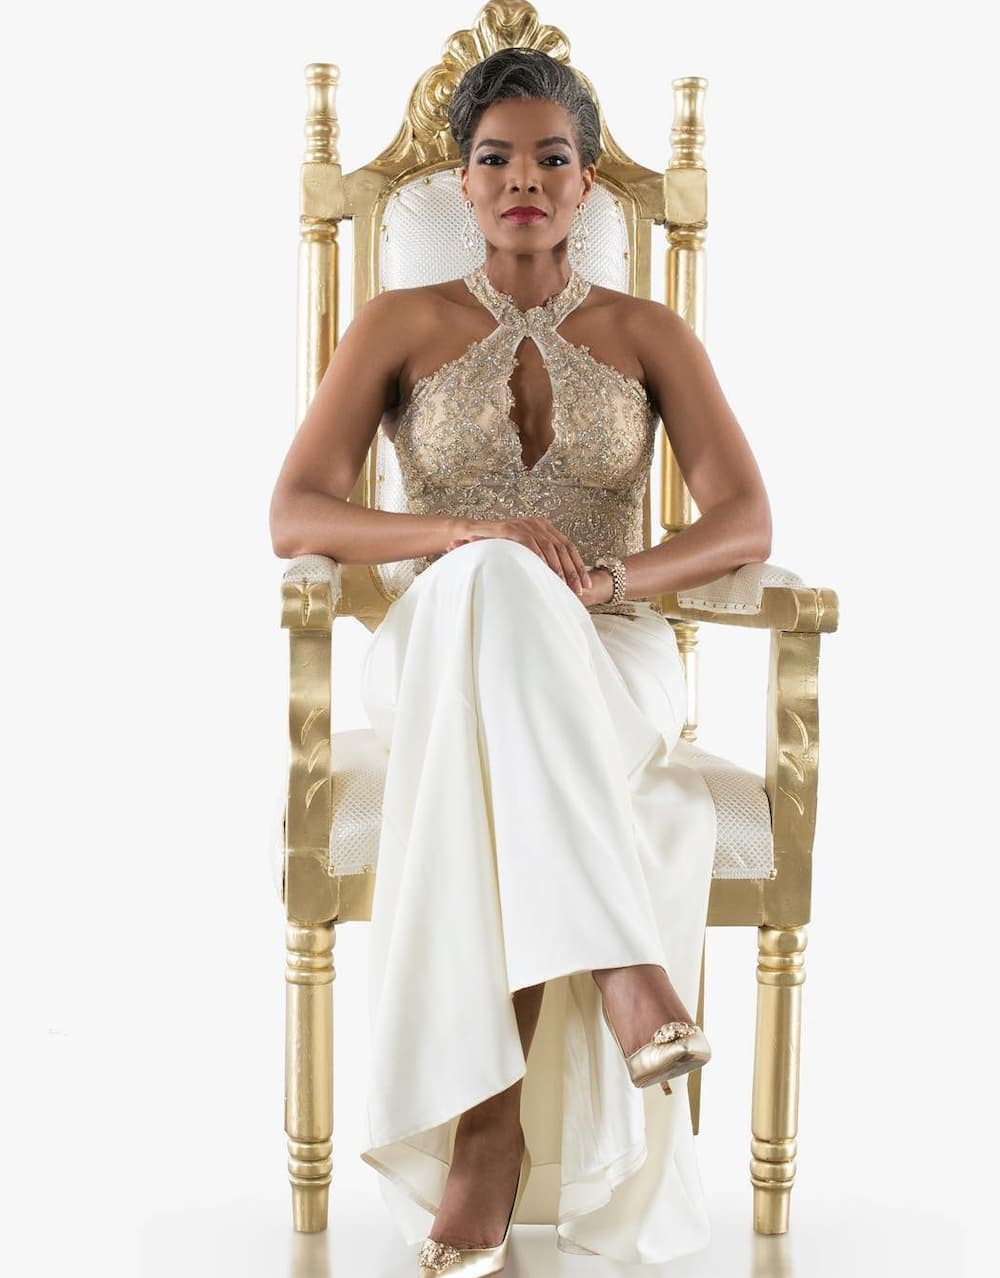 Connie Ferguson biography: age, daughters, husband, wedding, family, house and net worth